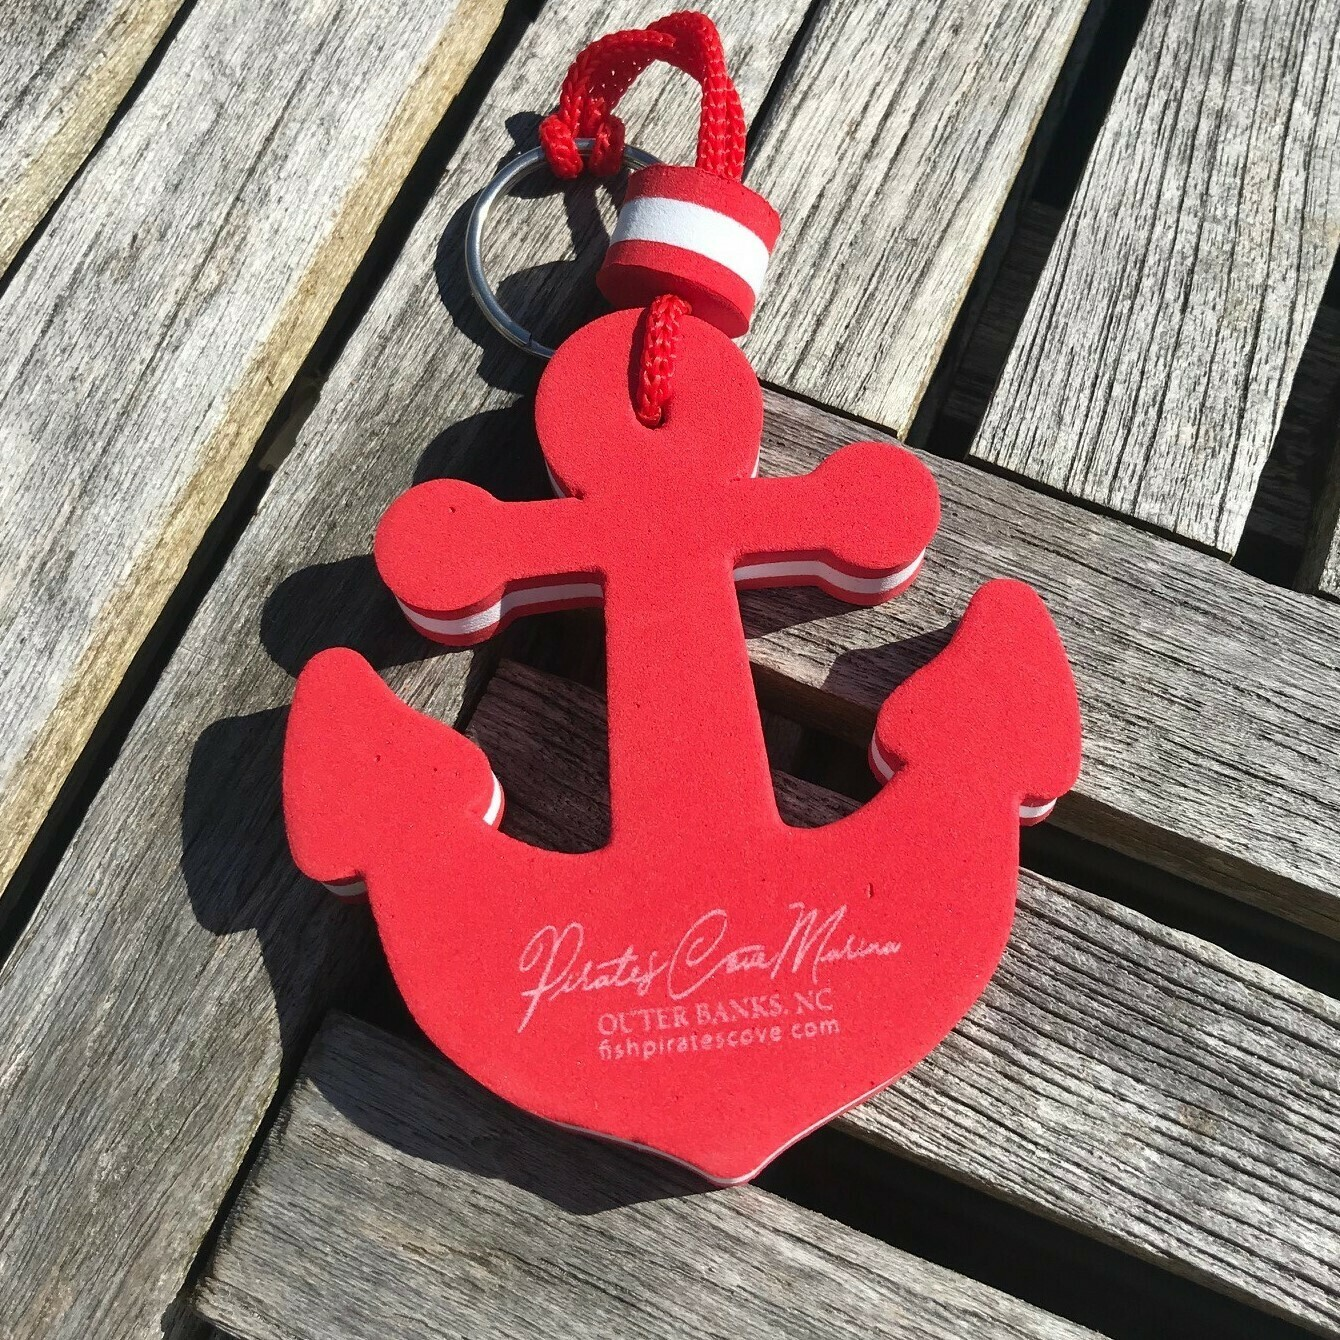 Pirate's Cove Floating Anchor Keychain